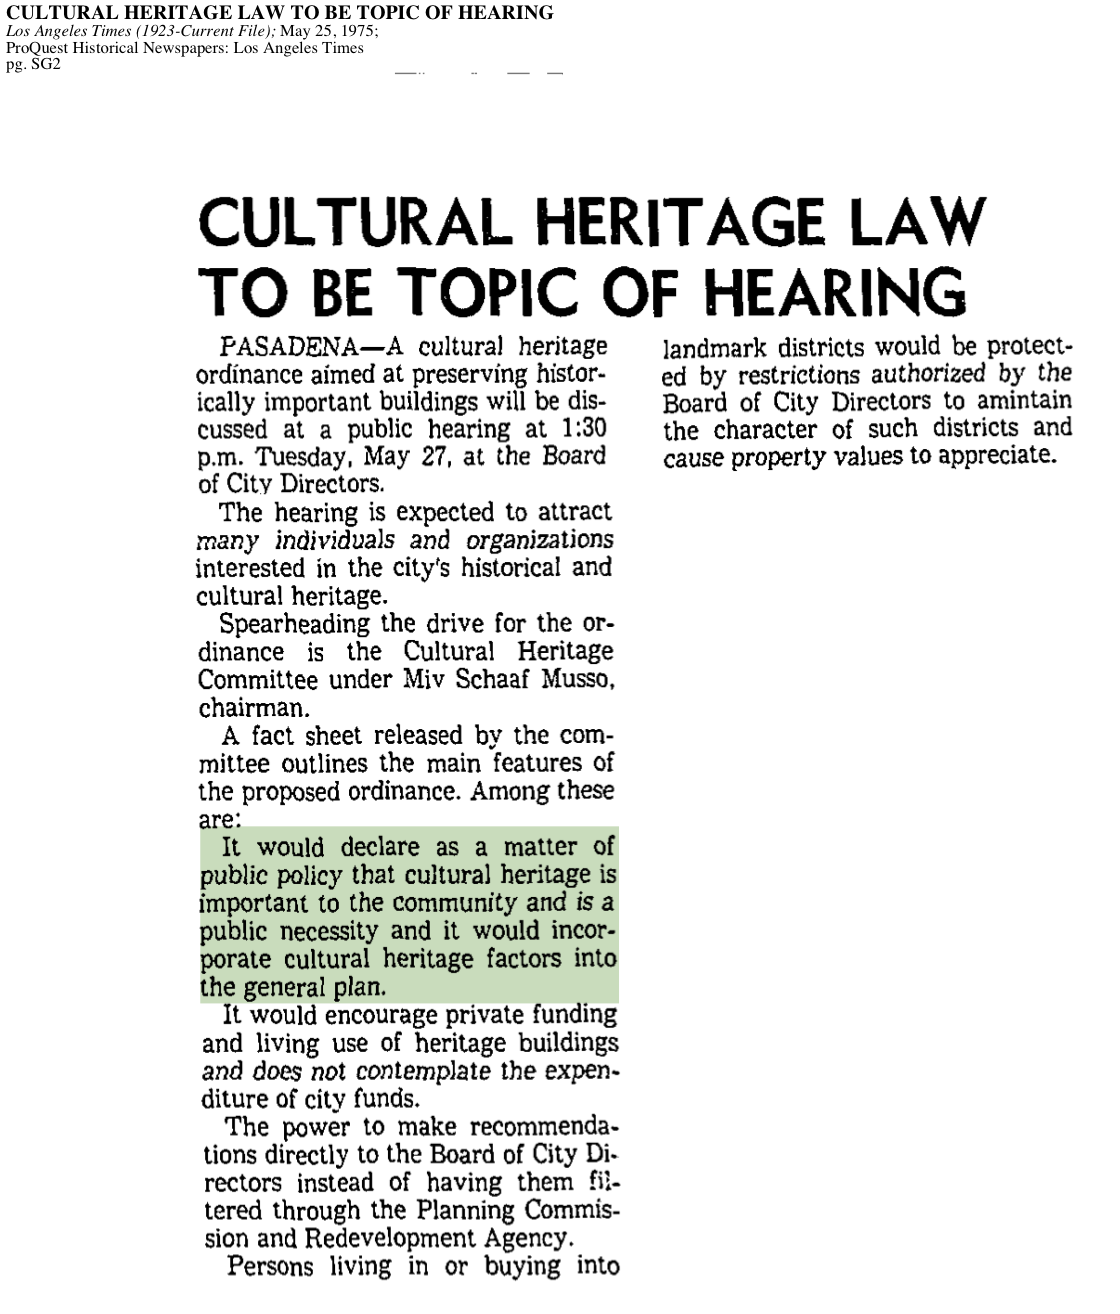 1975-Cultural Heritage Law To Be Topic Of Hearing